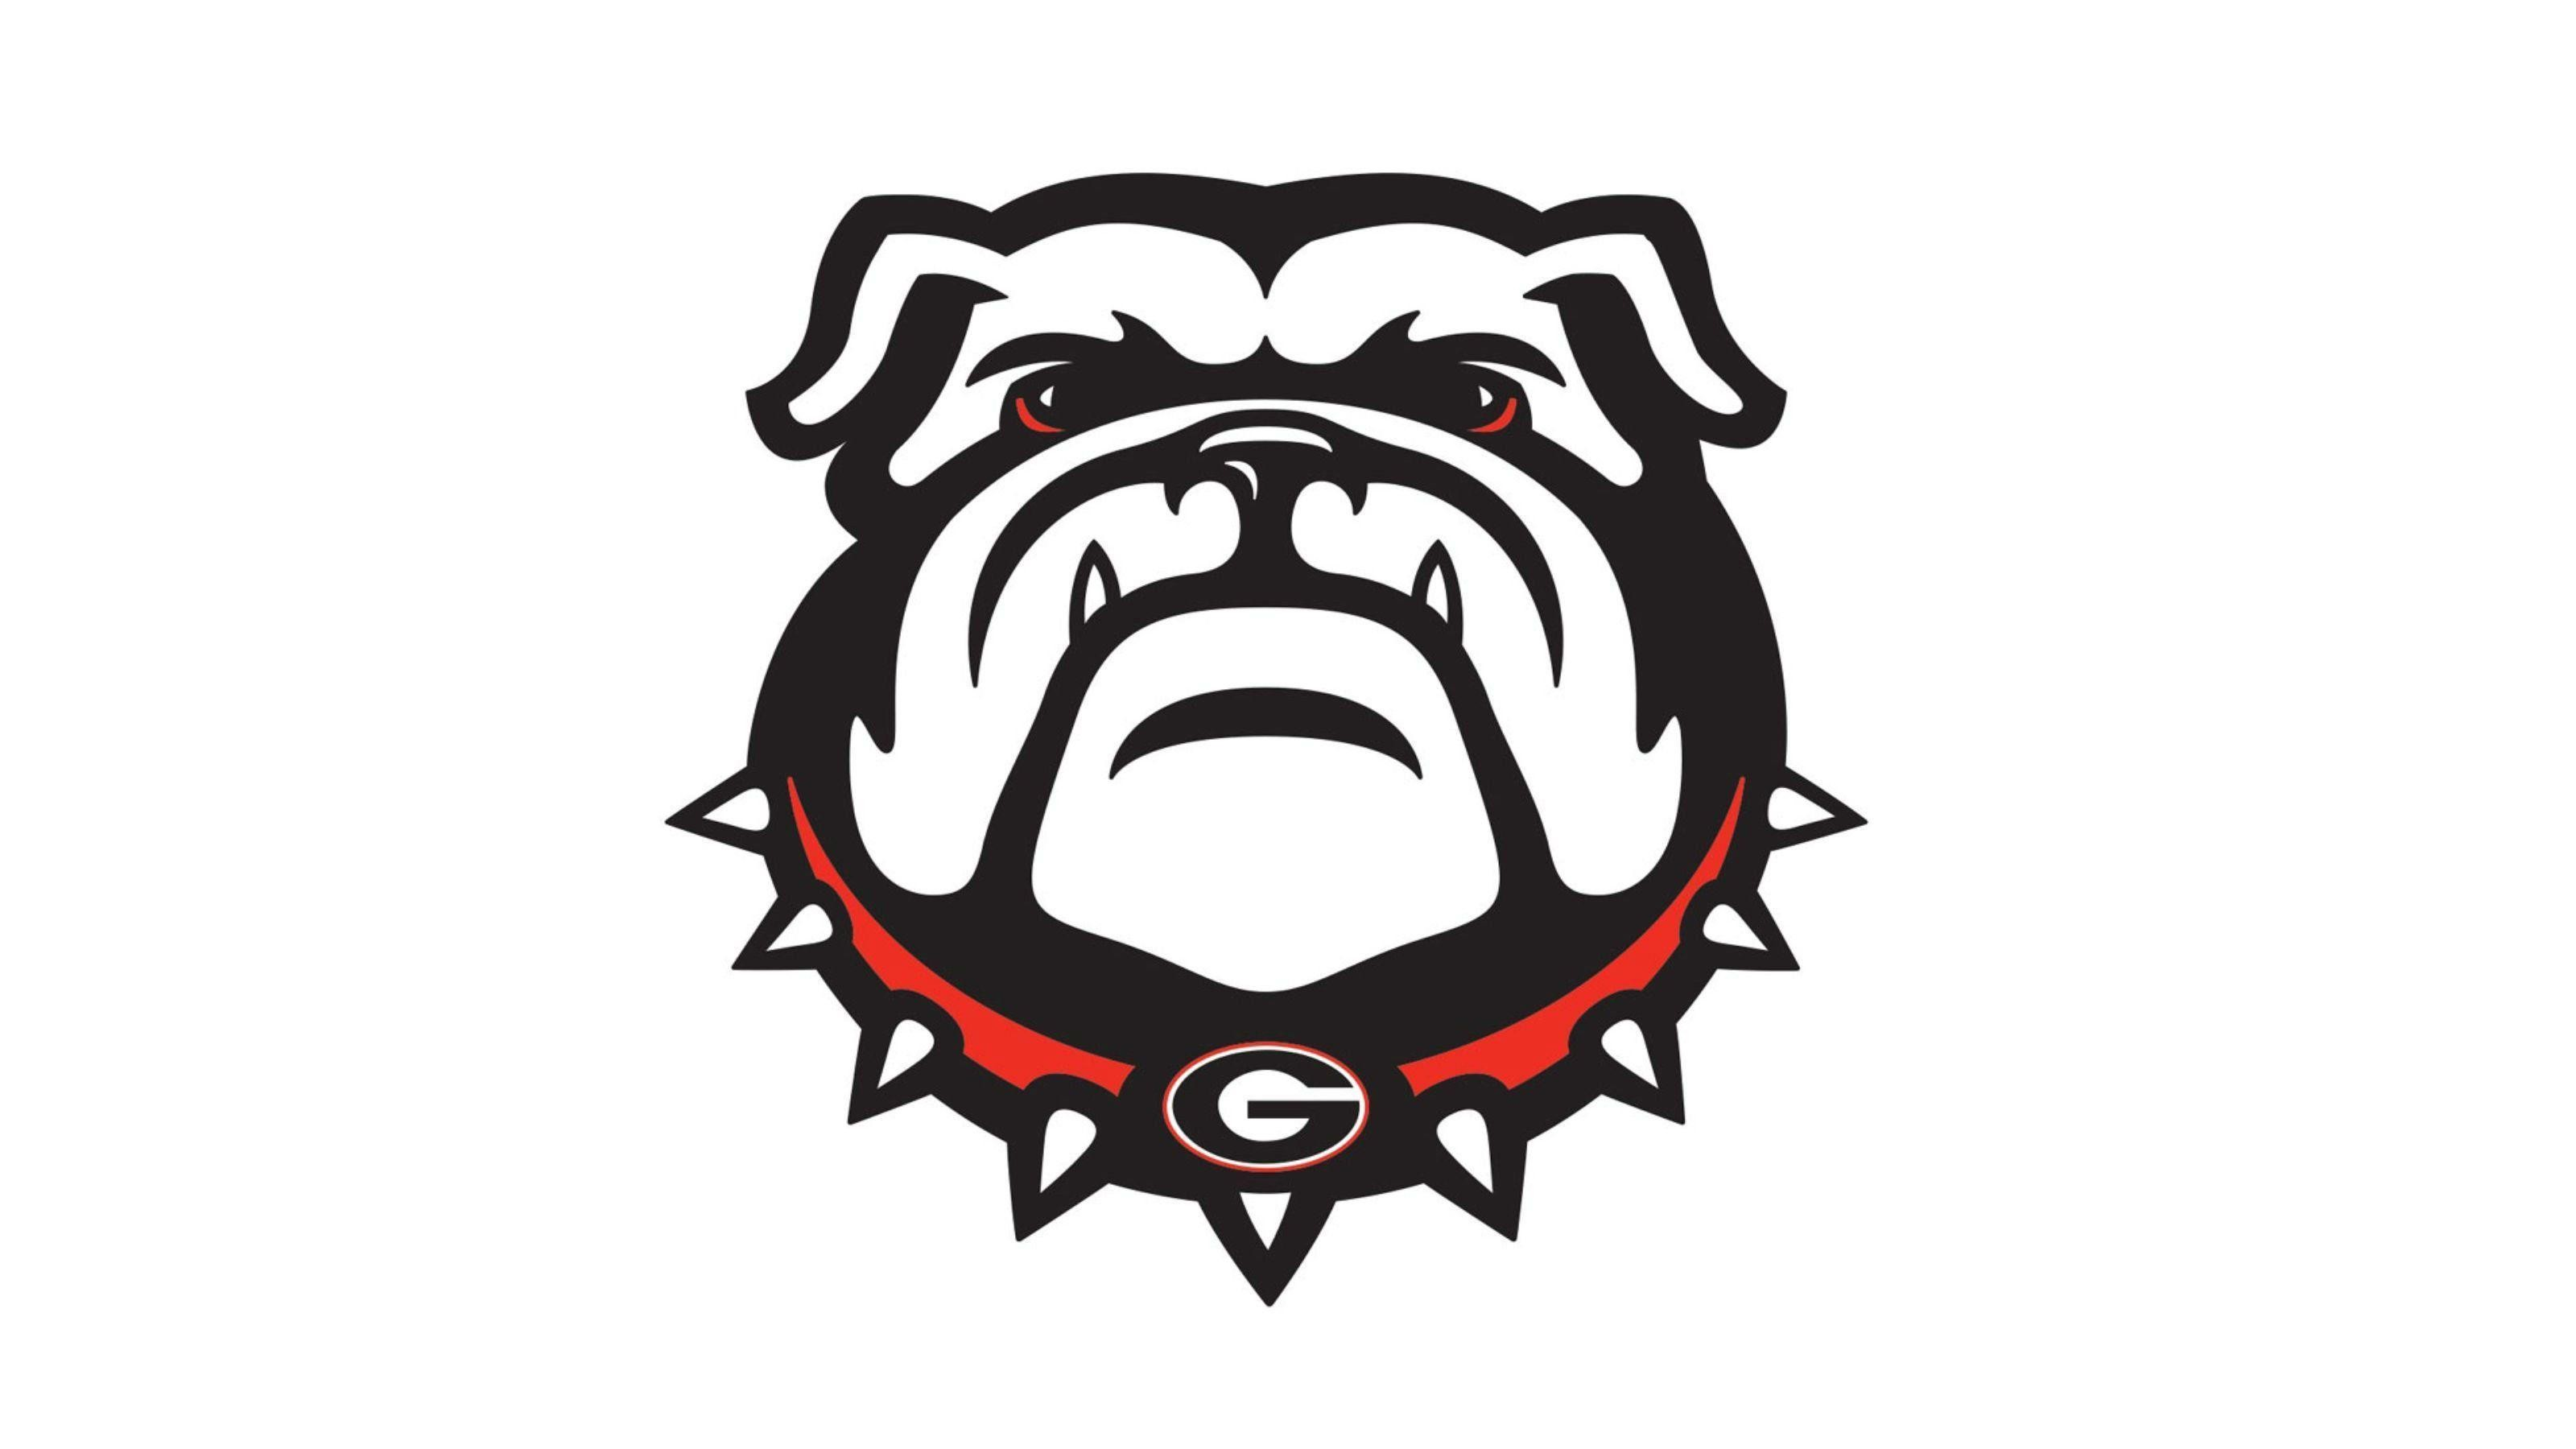 3200x1800 Georgia Bulldogs Wallpaper - HD Wallpapers Backgrounds of Your Choice